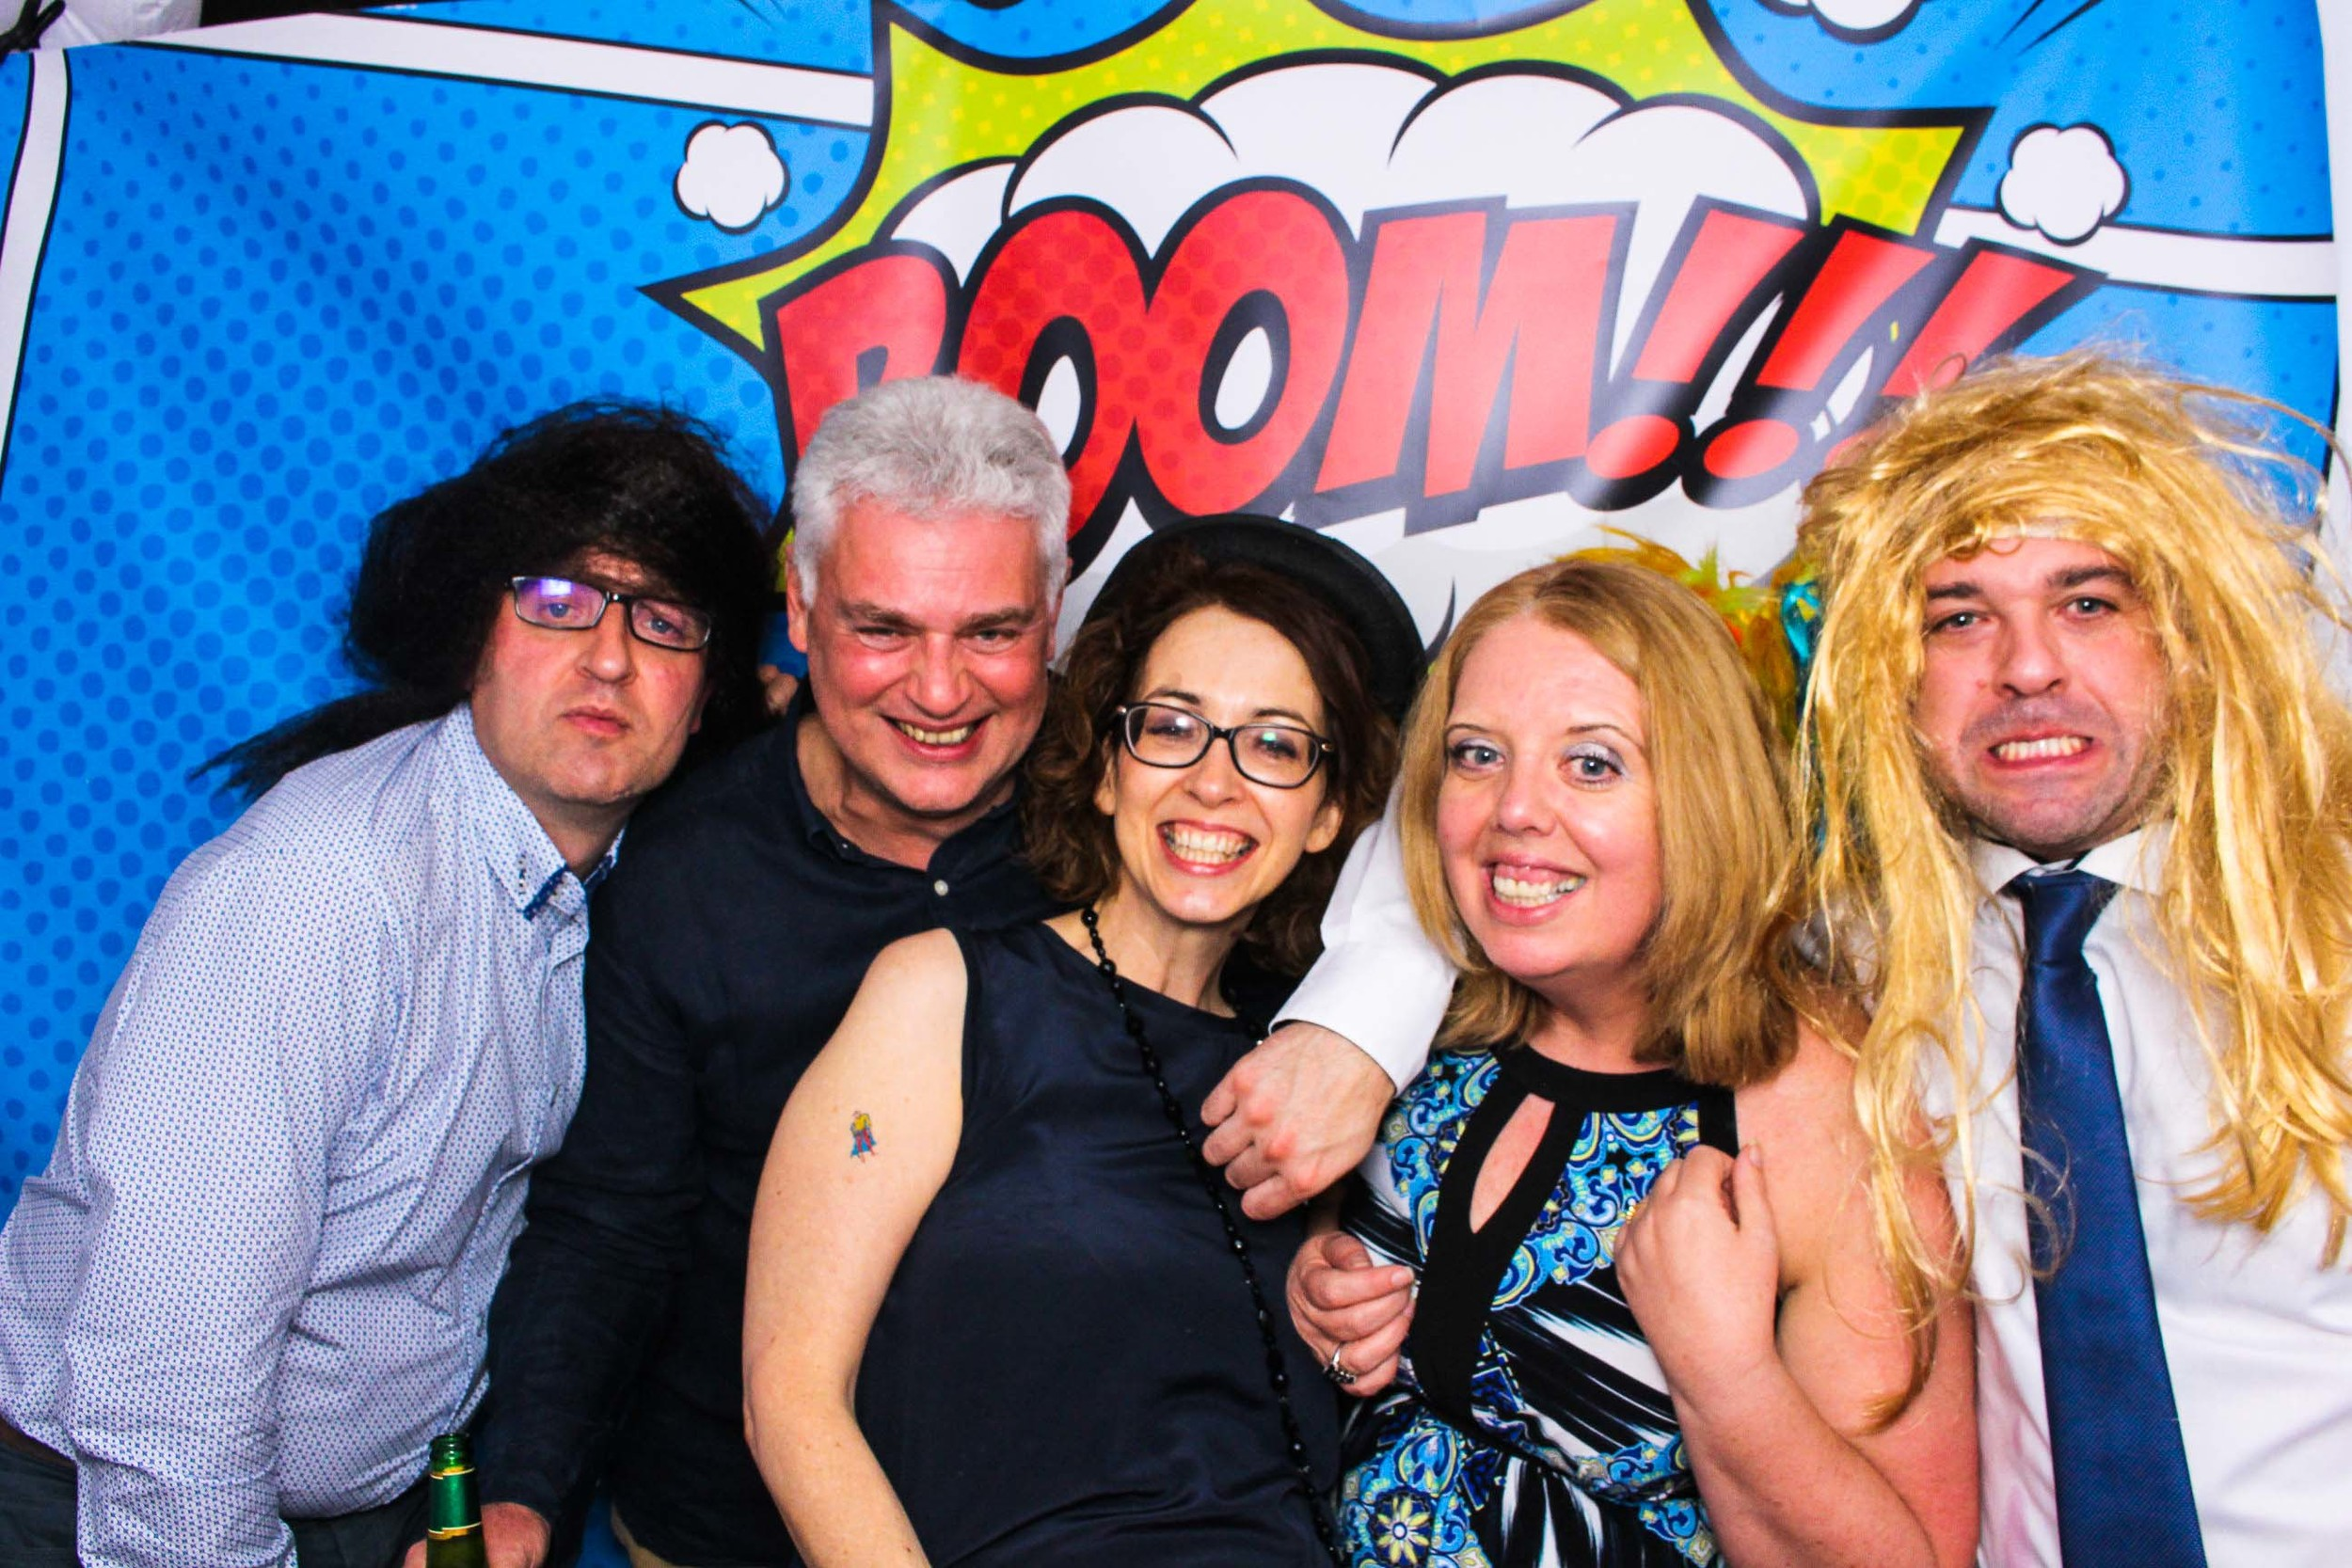 Fotoauto Photo Booth Hire - Shop Direct-326.jpg